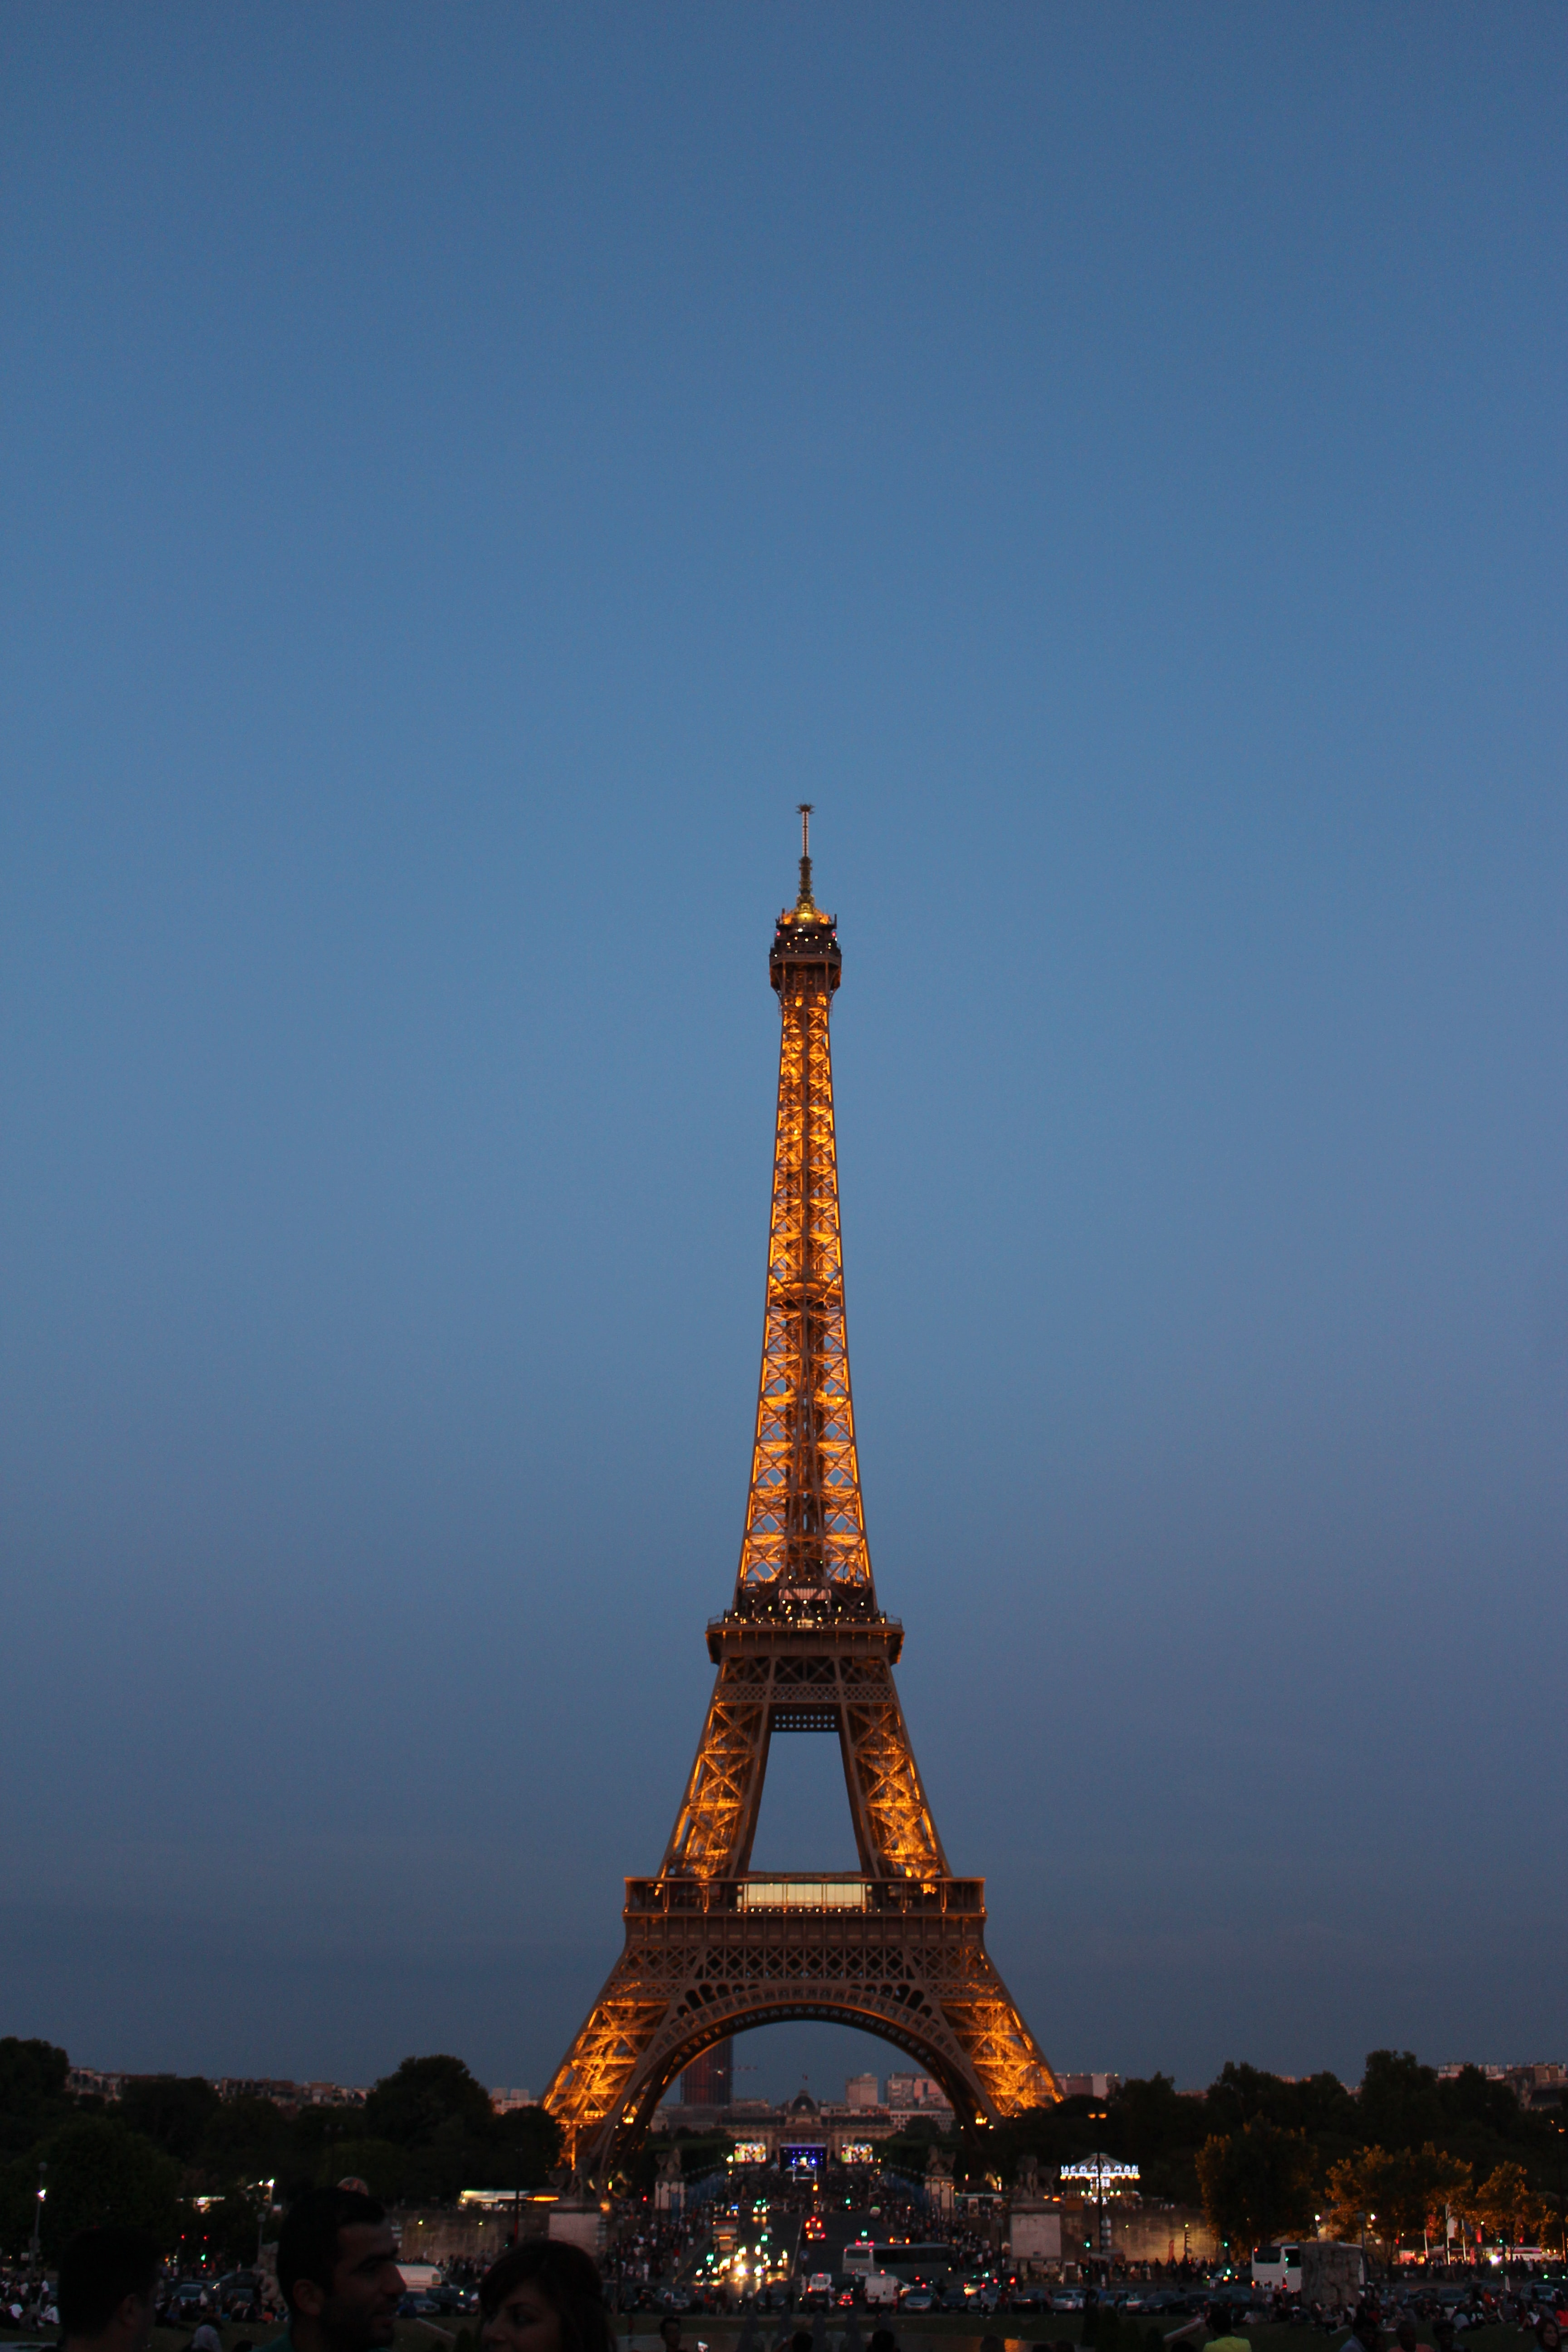 The Eiffel Tower monument with the Paris cityscape in the background.